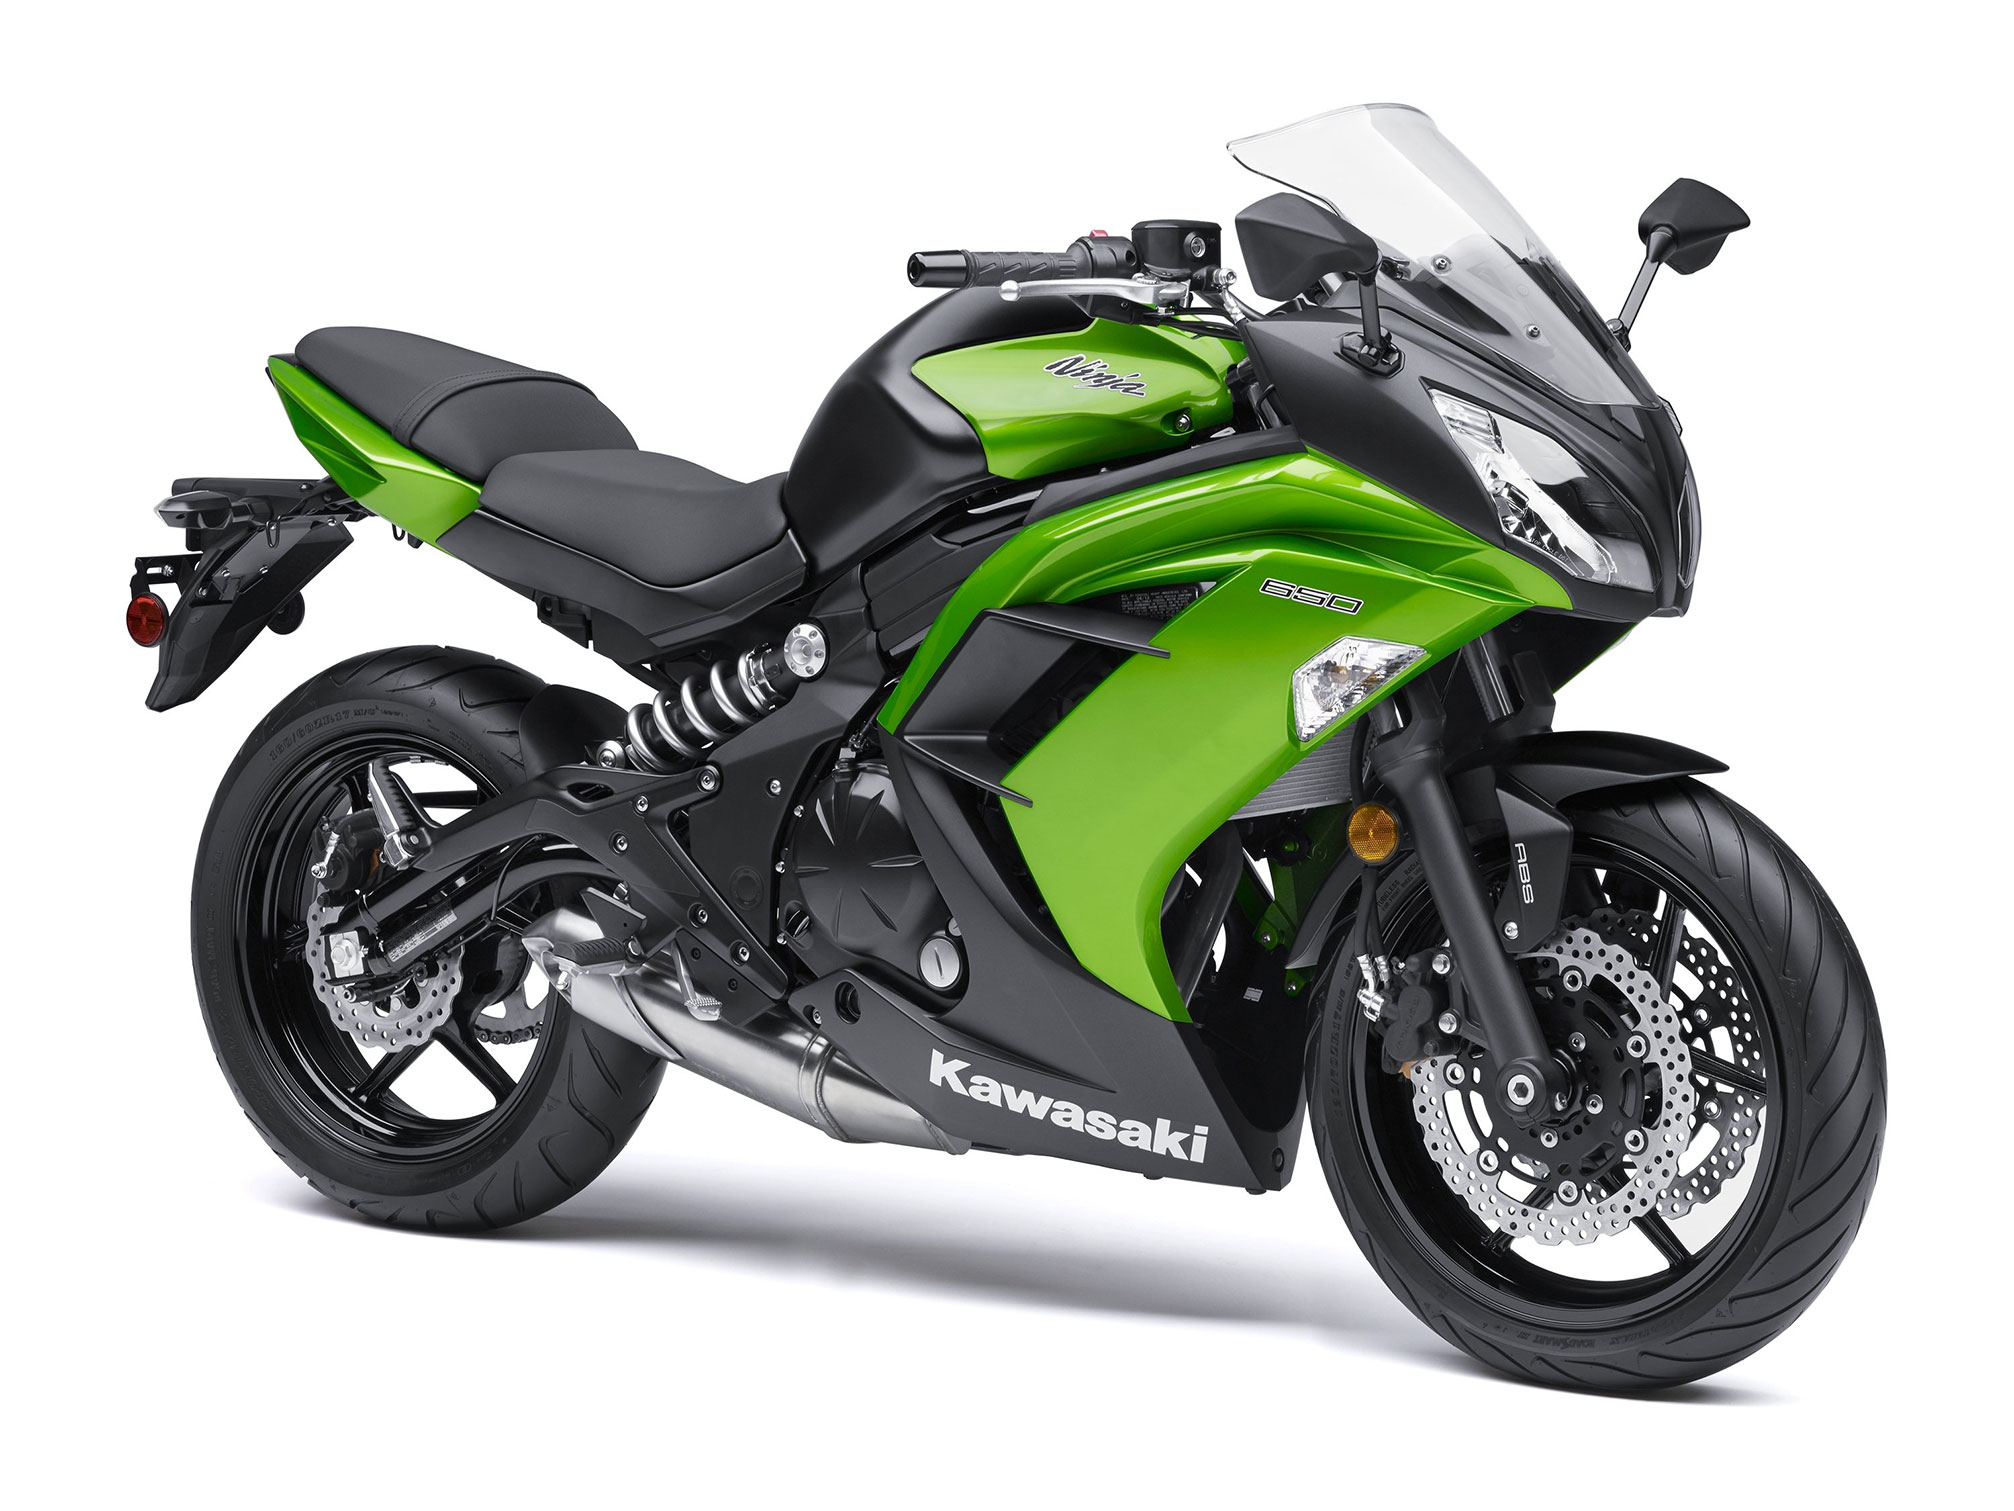 2014 Kawasaki Ninja 650 Review